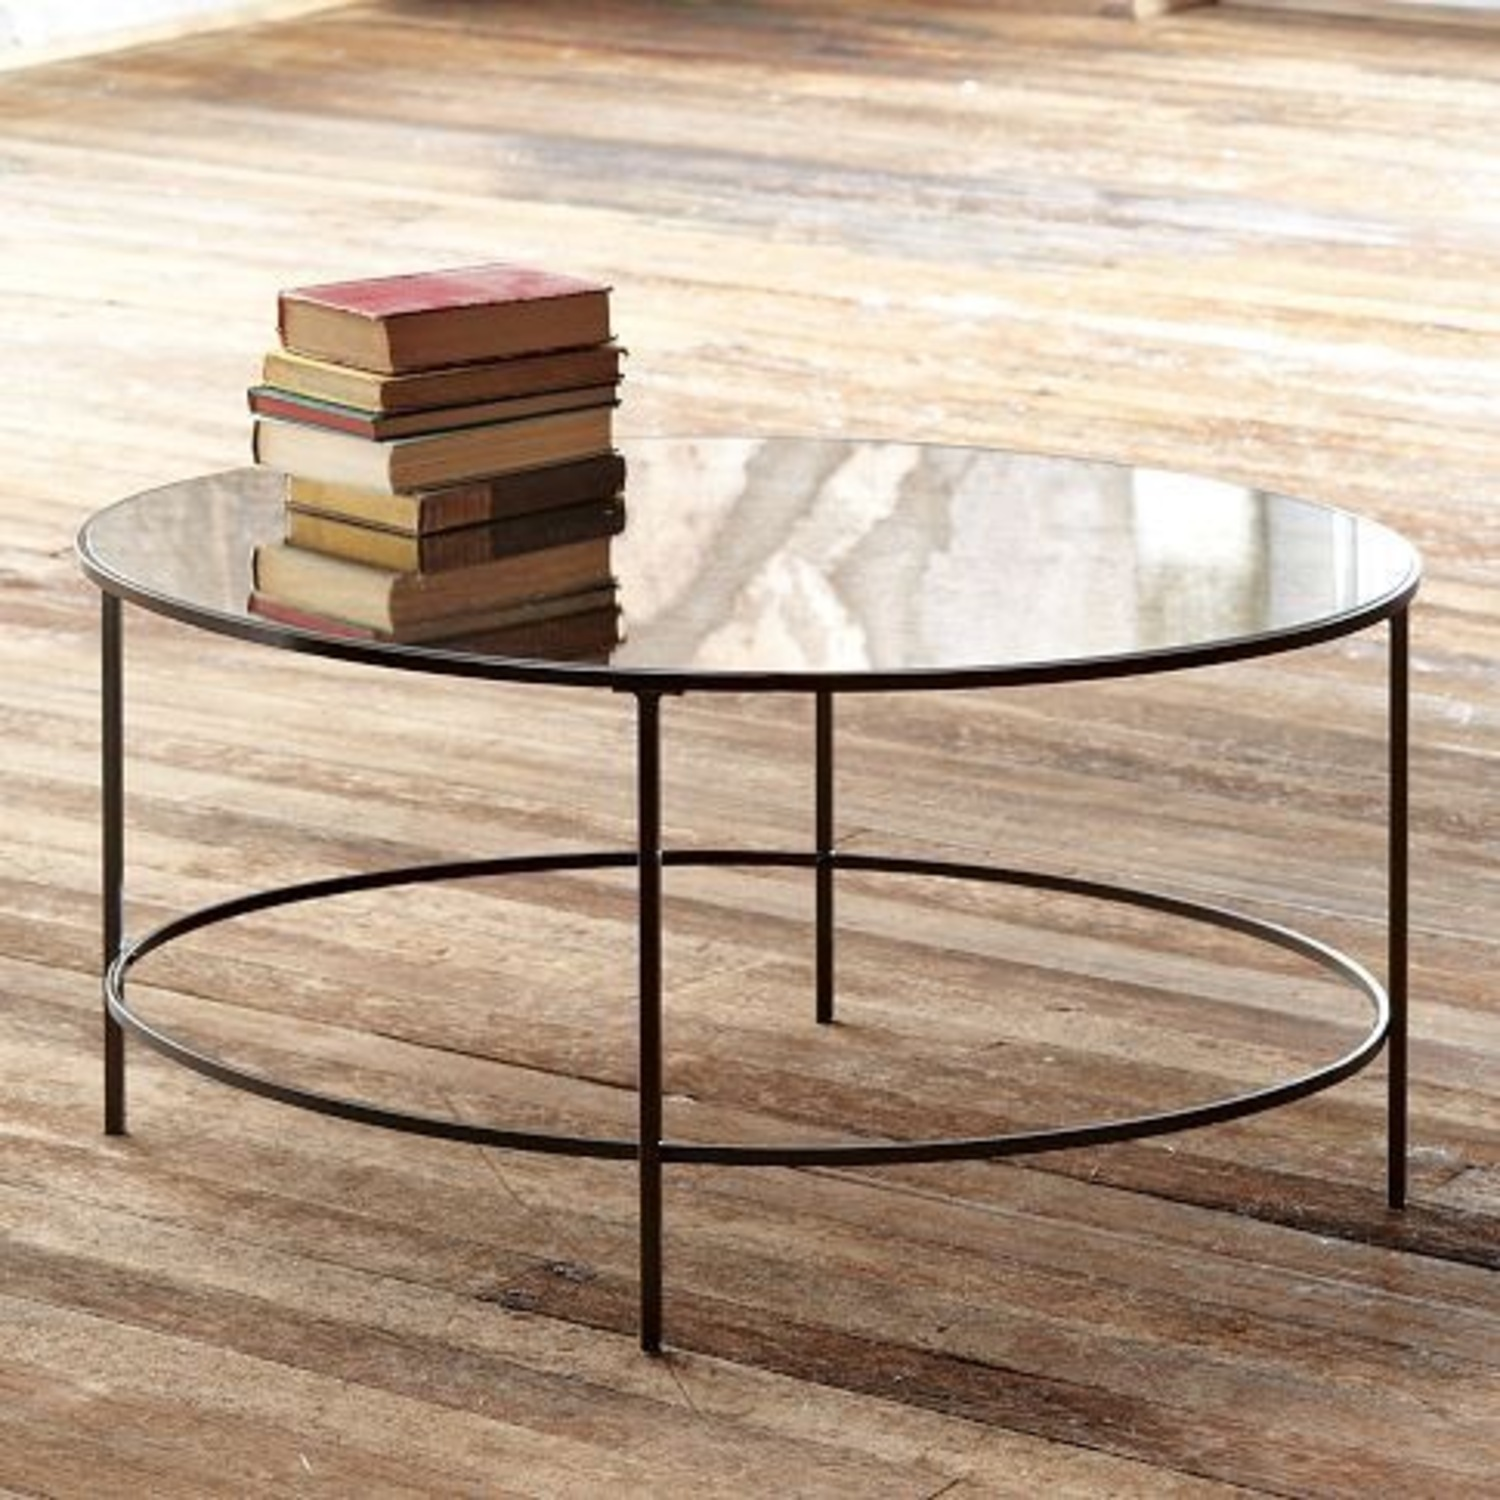 West Elm Foxed Mirrored Glass Oval Coffee Table - image-0